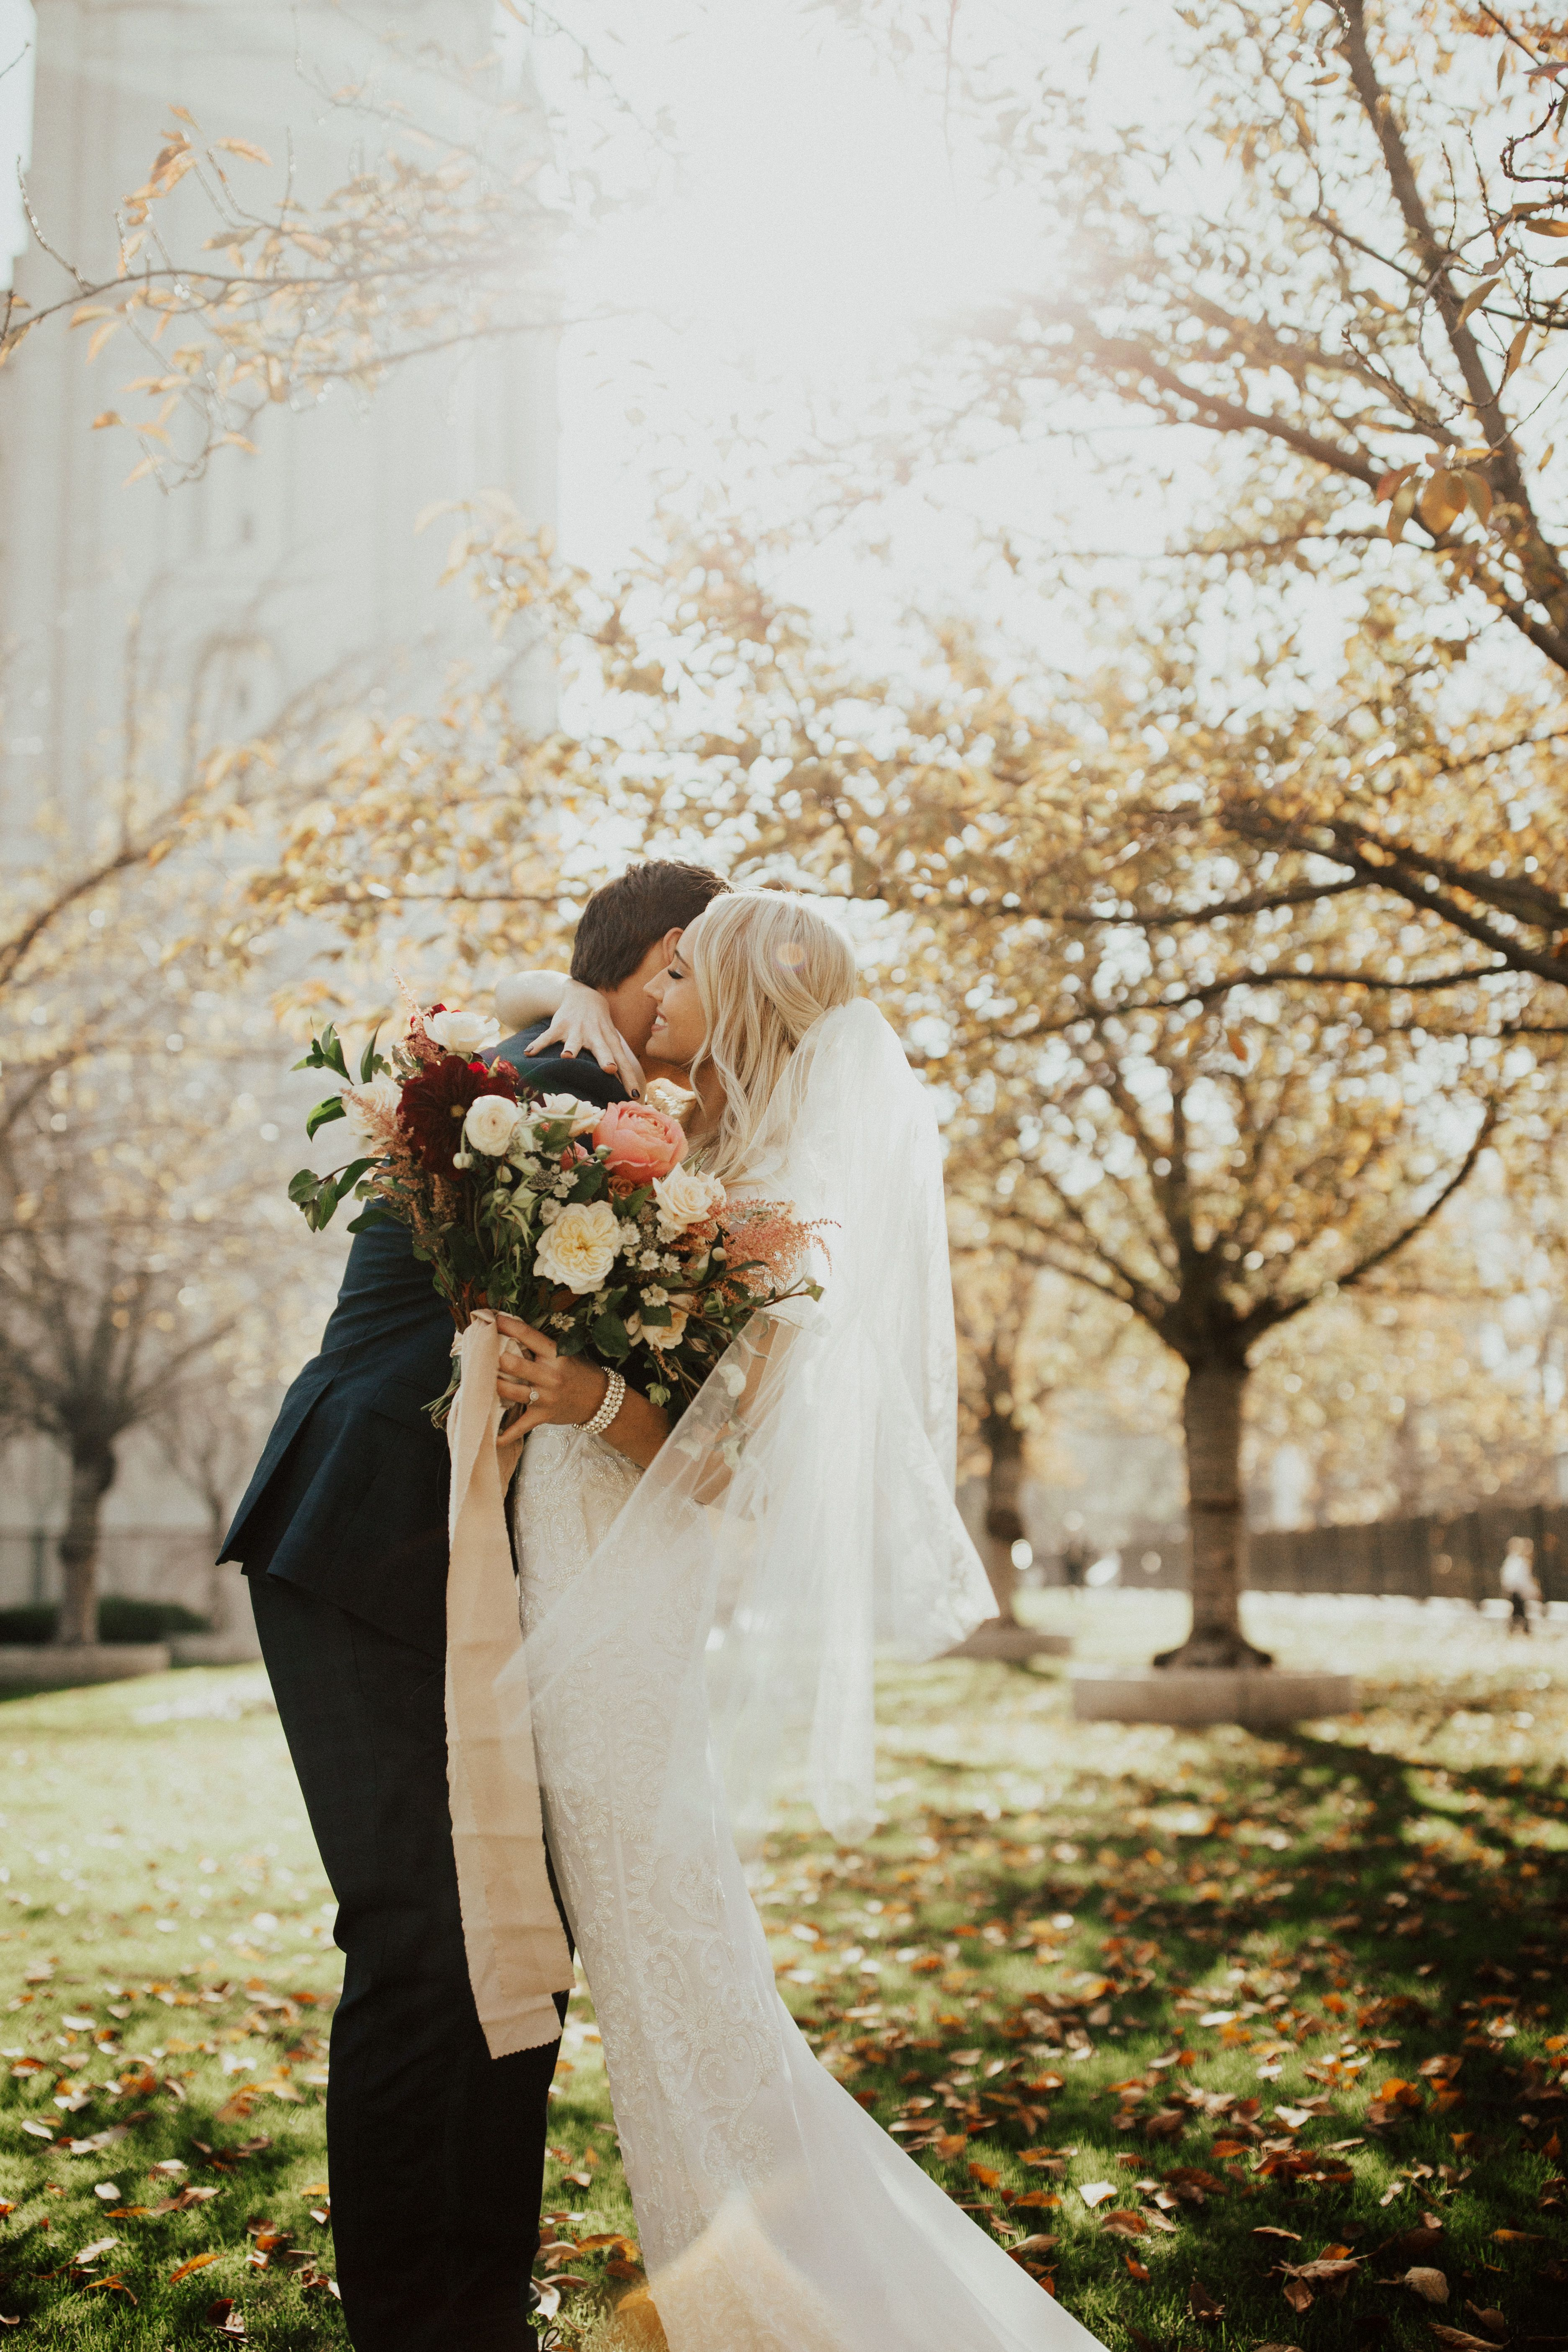 Beautiful Wedding Photo Of The Bride And Groom That Location Is Gorgeous Wedding Ph Wedding Photography Bride Wedding Photography Digital Wedding Photography